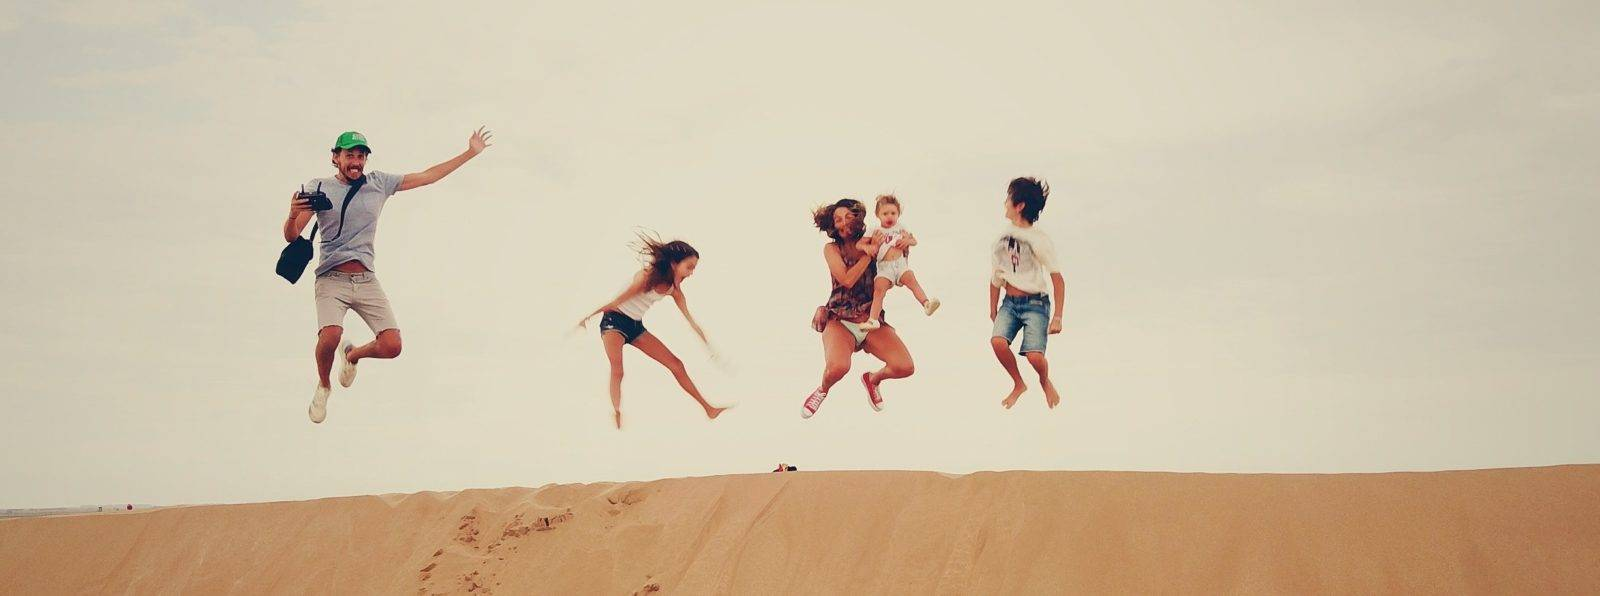 Benefits Of Traveling With Your Family Global Travel Network